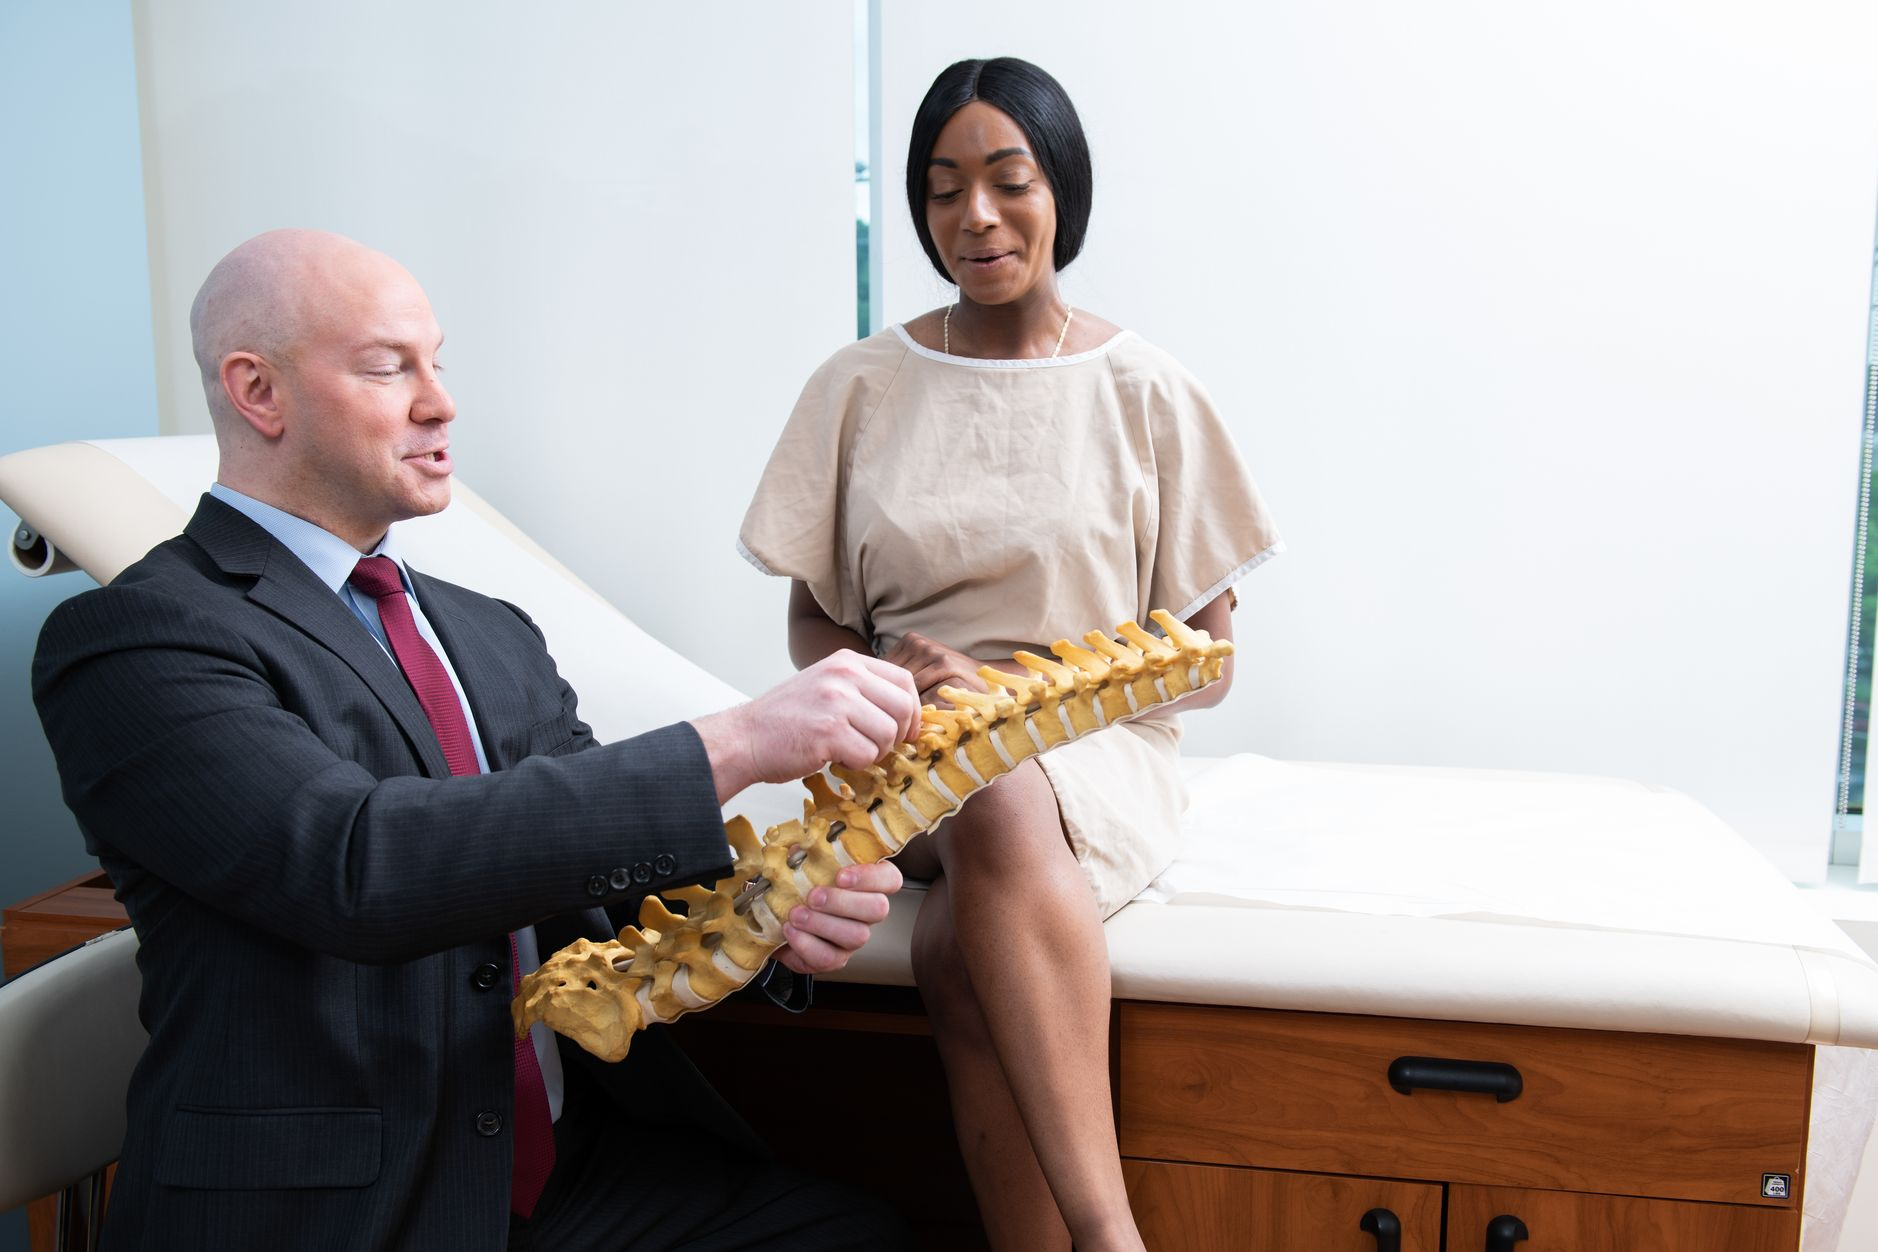 A doctor shows a female patient a model of the spine.